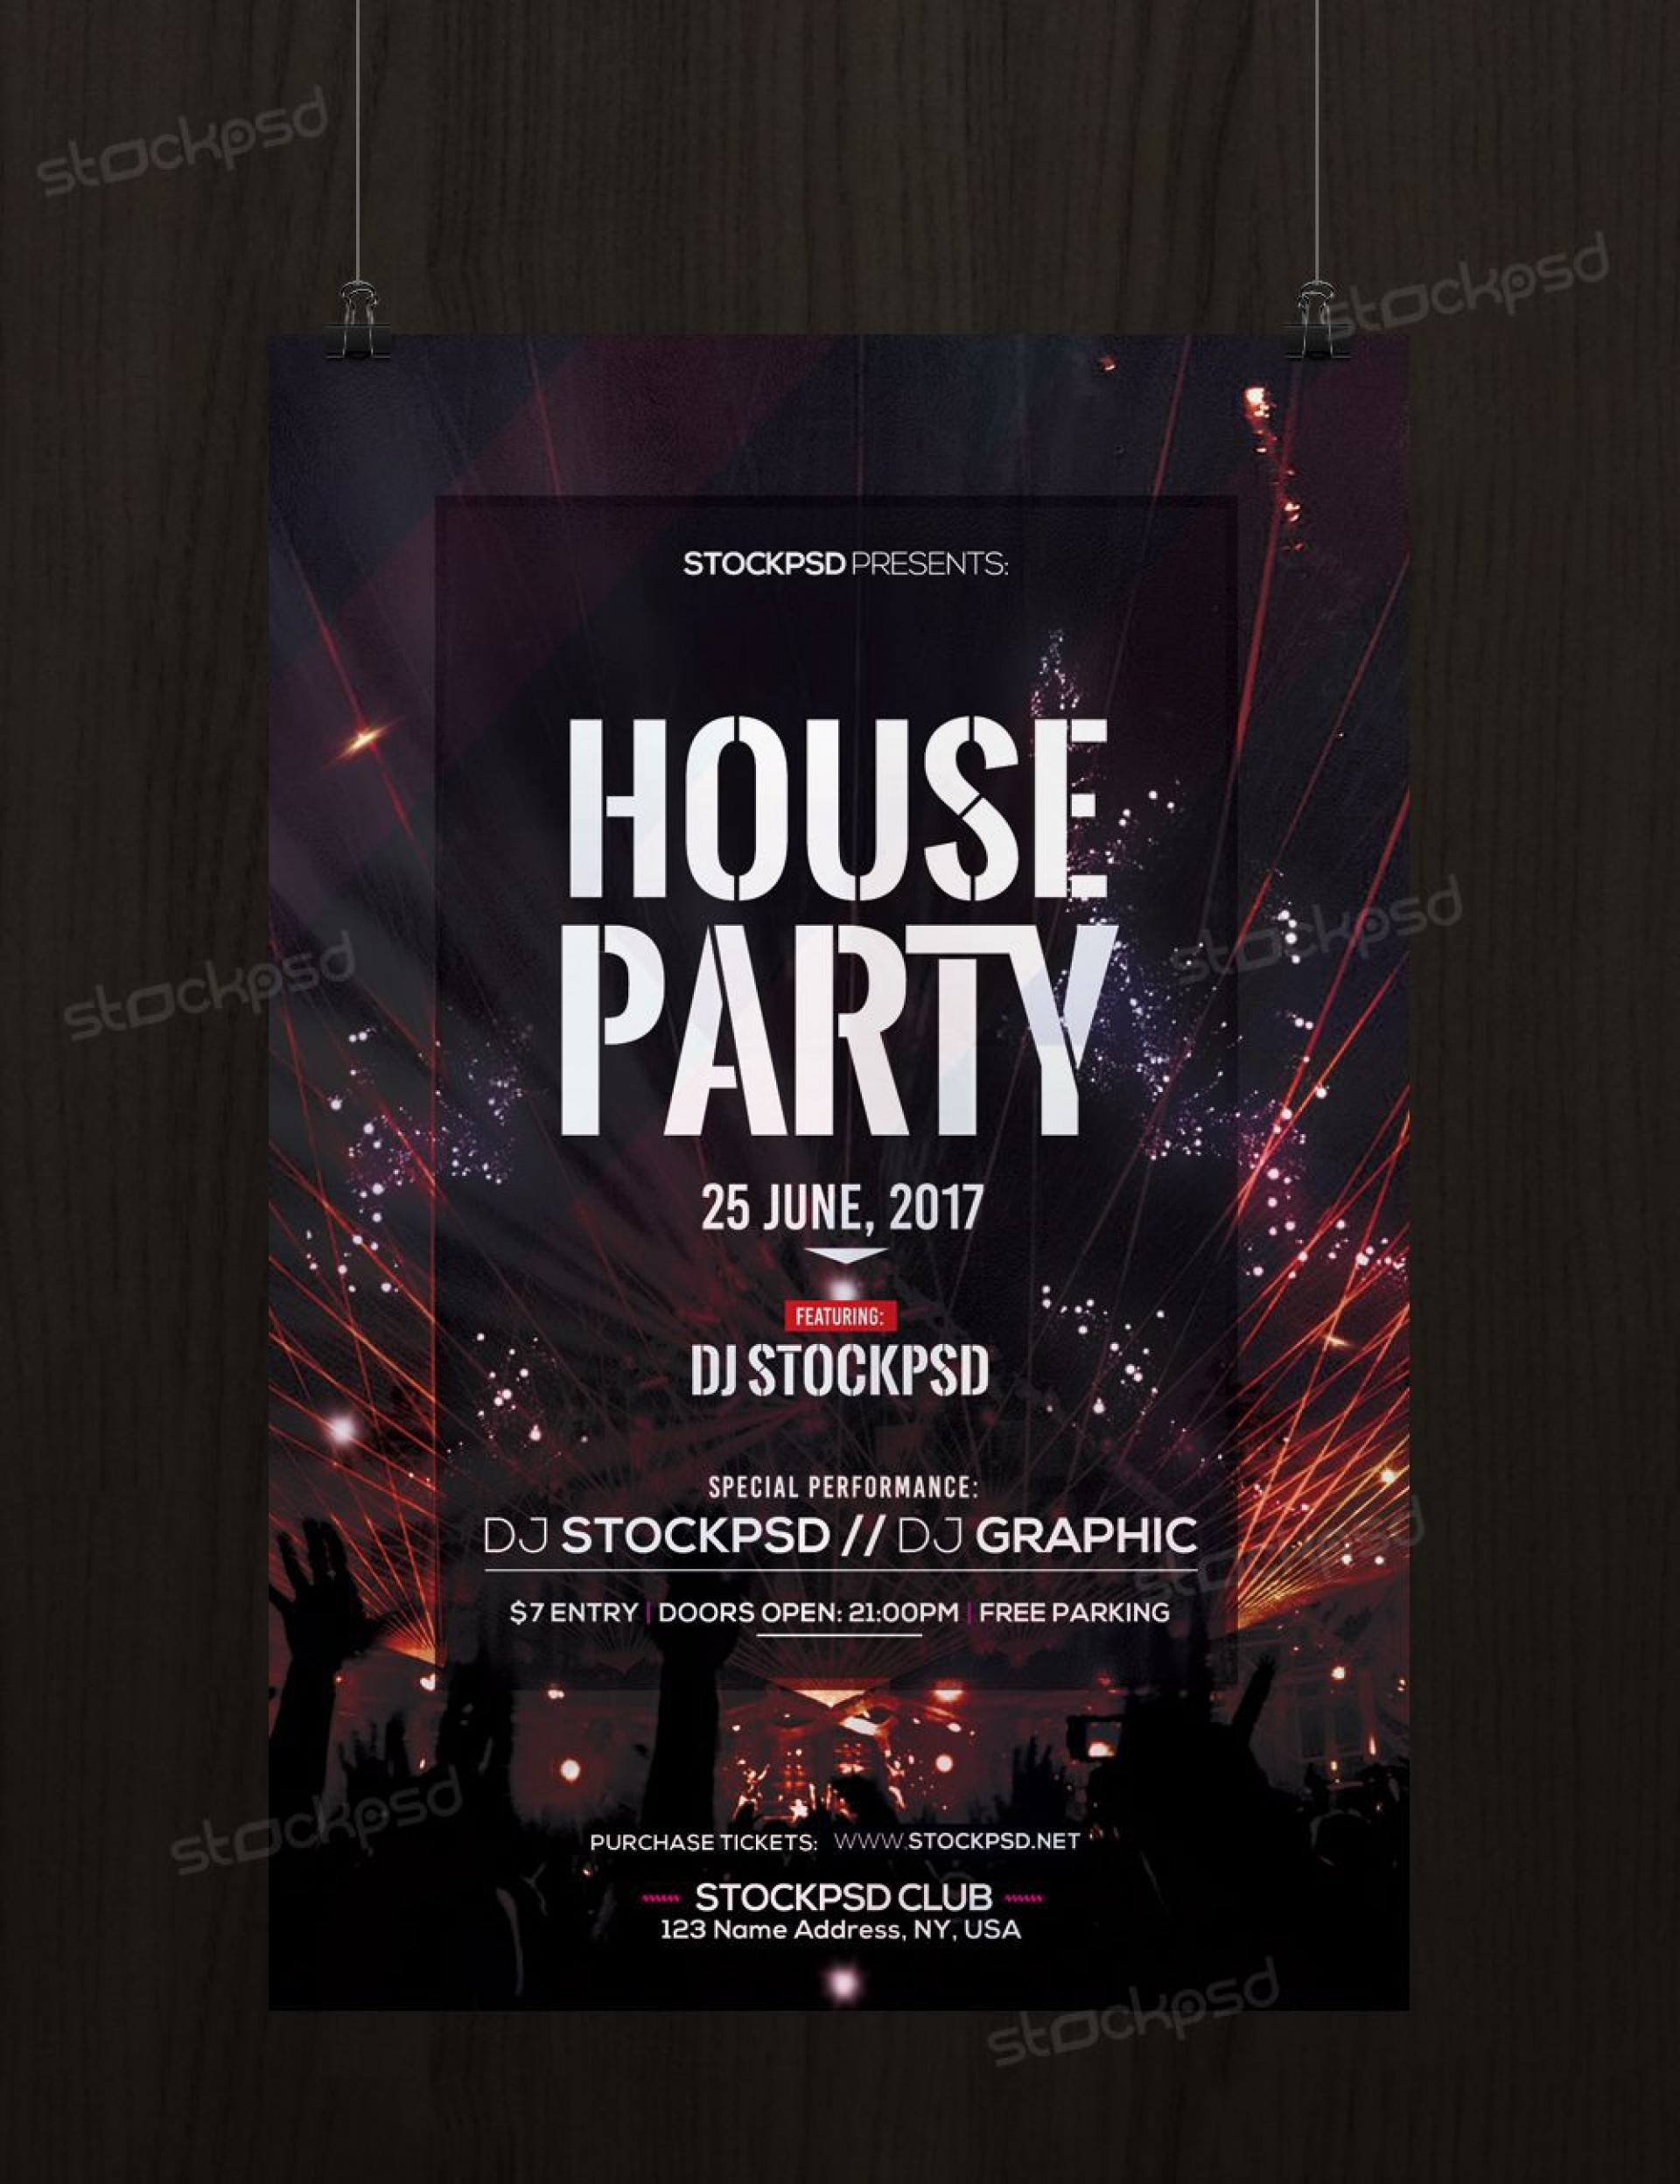 002 Shocking Party Flyer Template Free Picture  50th Birthday Invite Graduation Psd1920